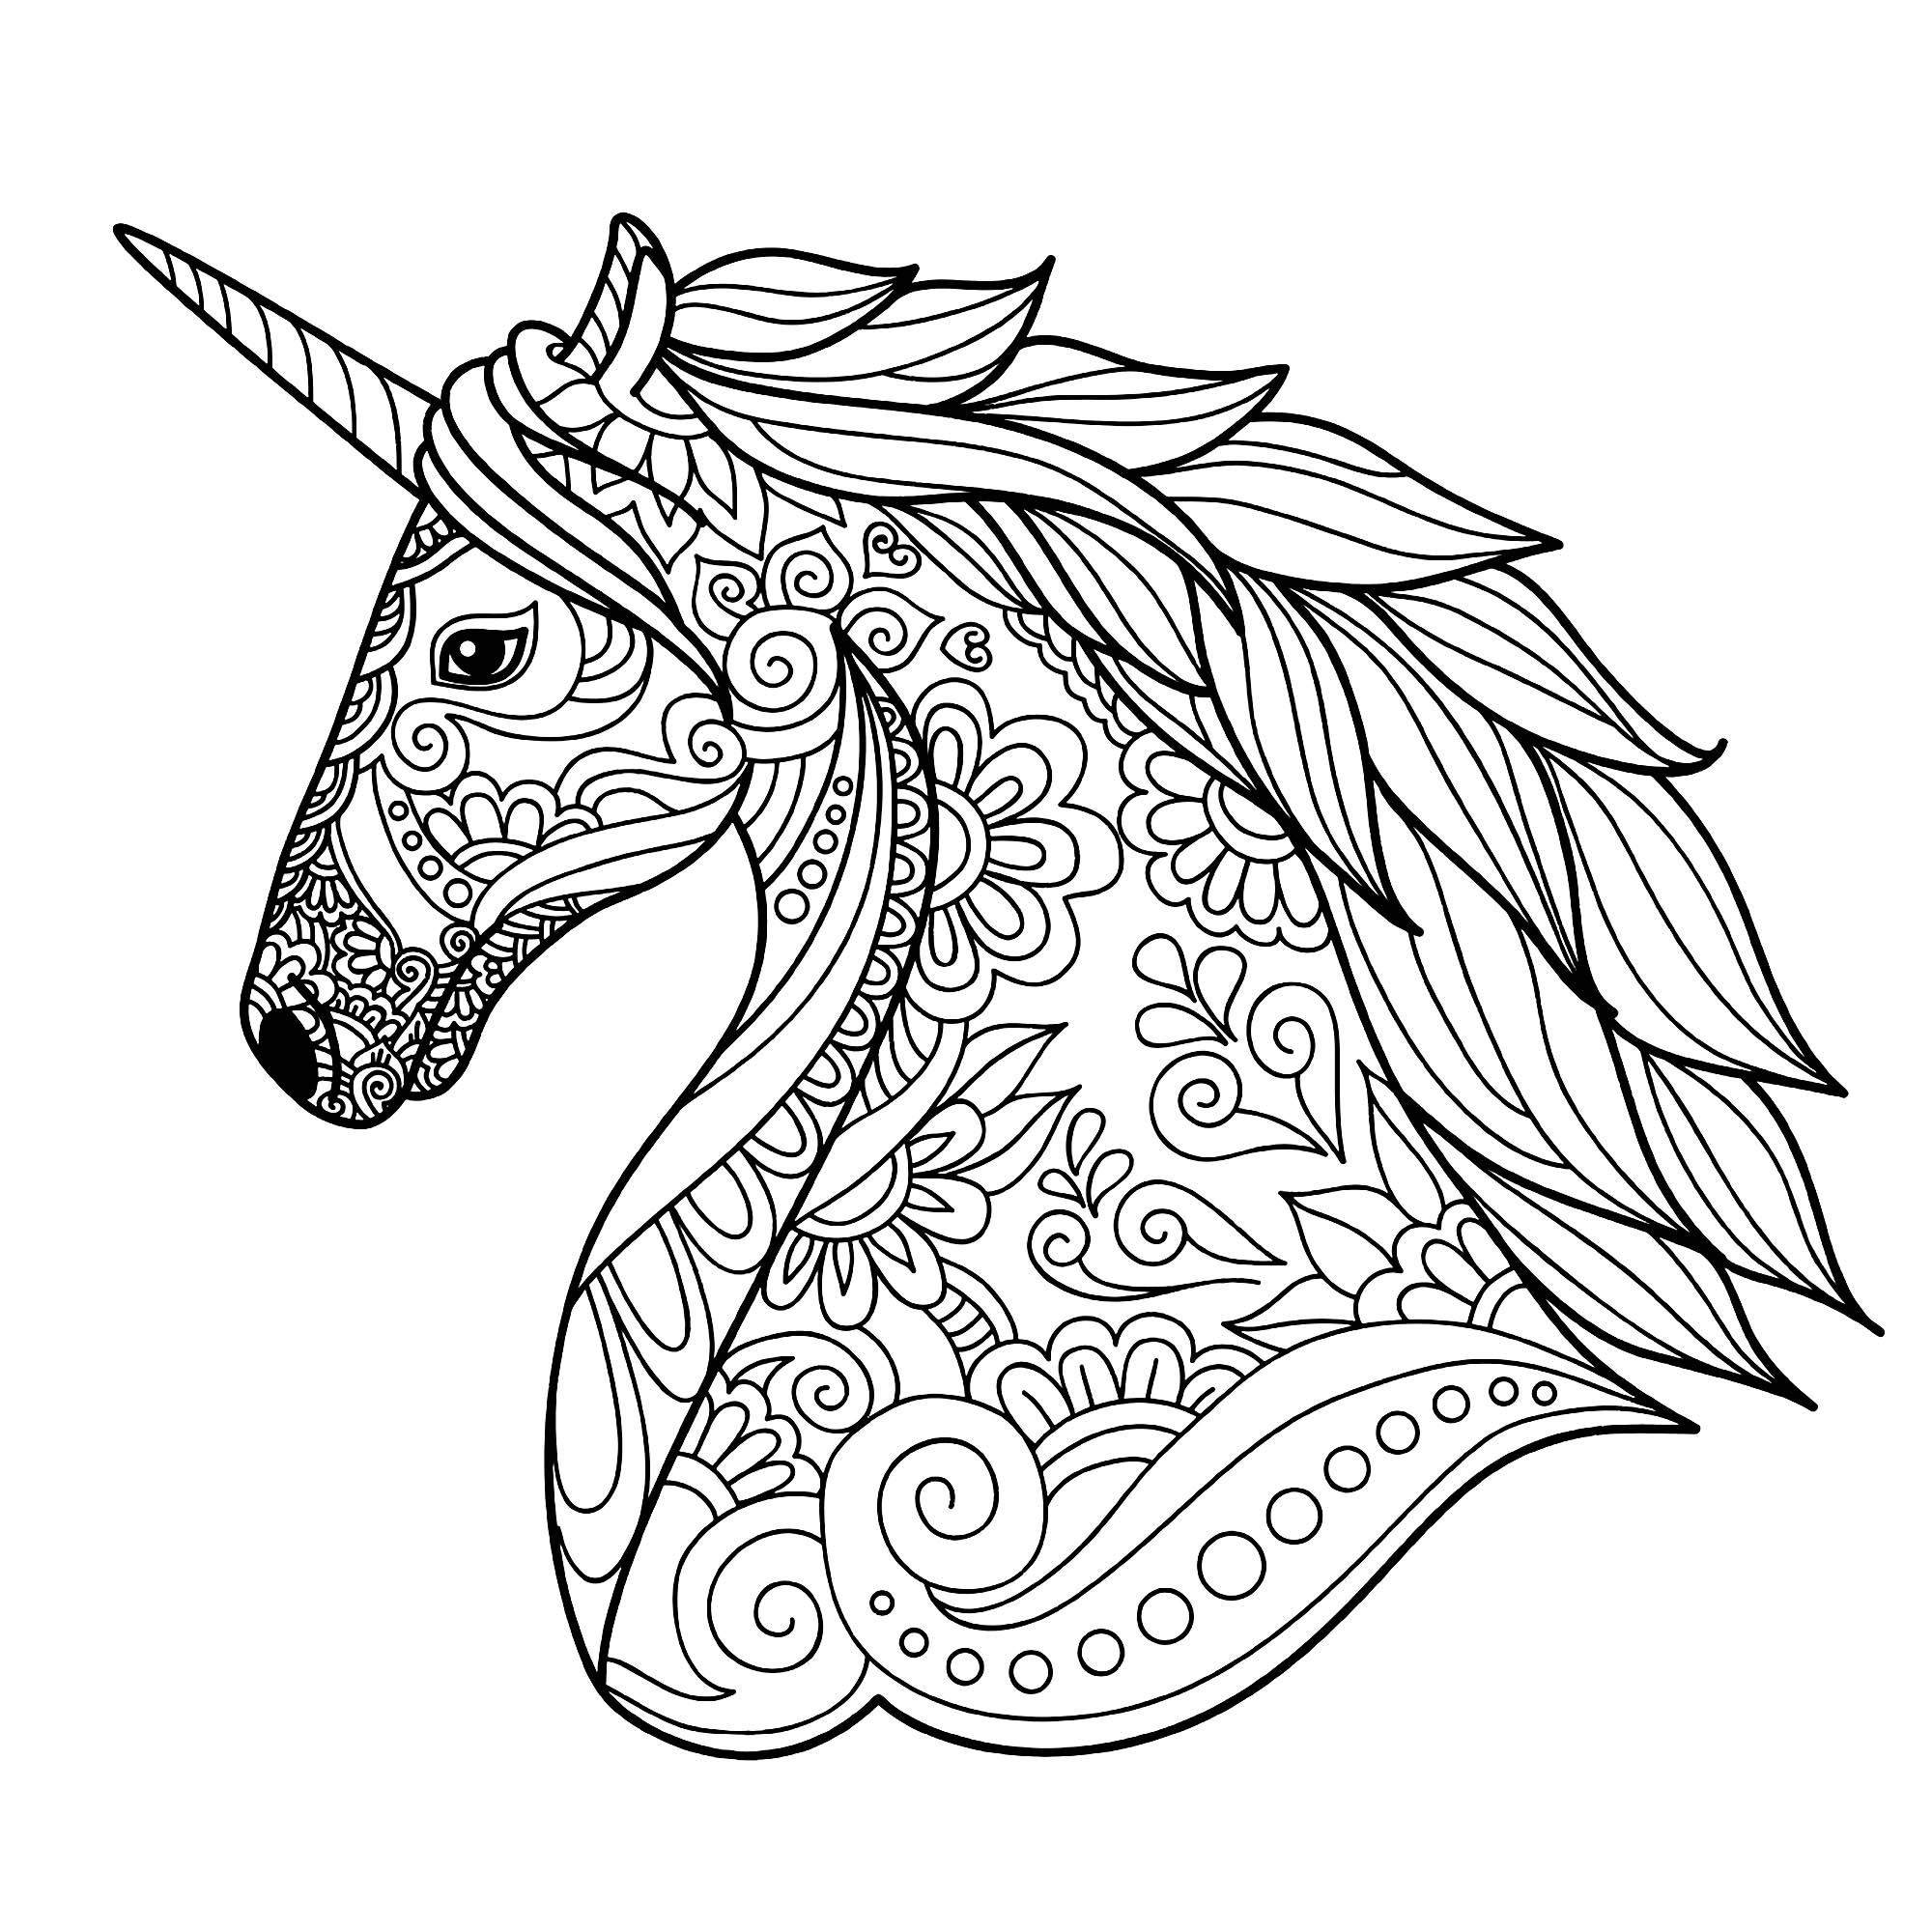 coloring pages of unicorns free printable unicorn coloring pages for kids coloring of pages unicorns